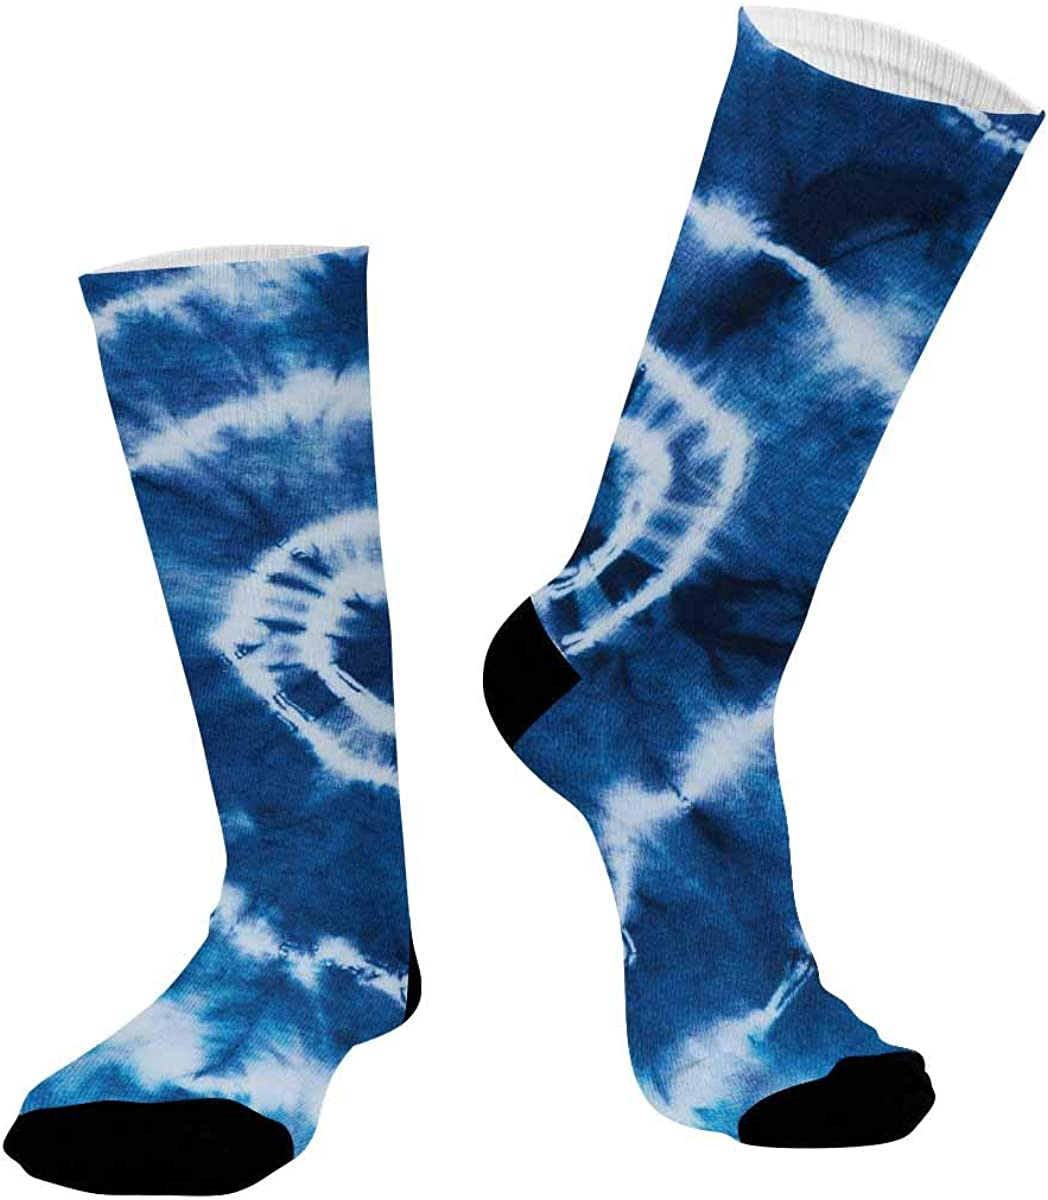 INTERESTPRINT Athletic Sublimated Crew Socks for Adults Indigo Tie Dye Pattern